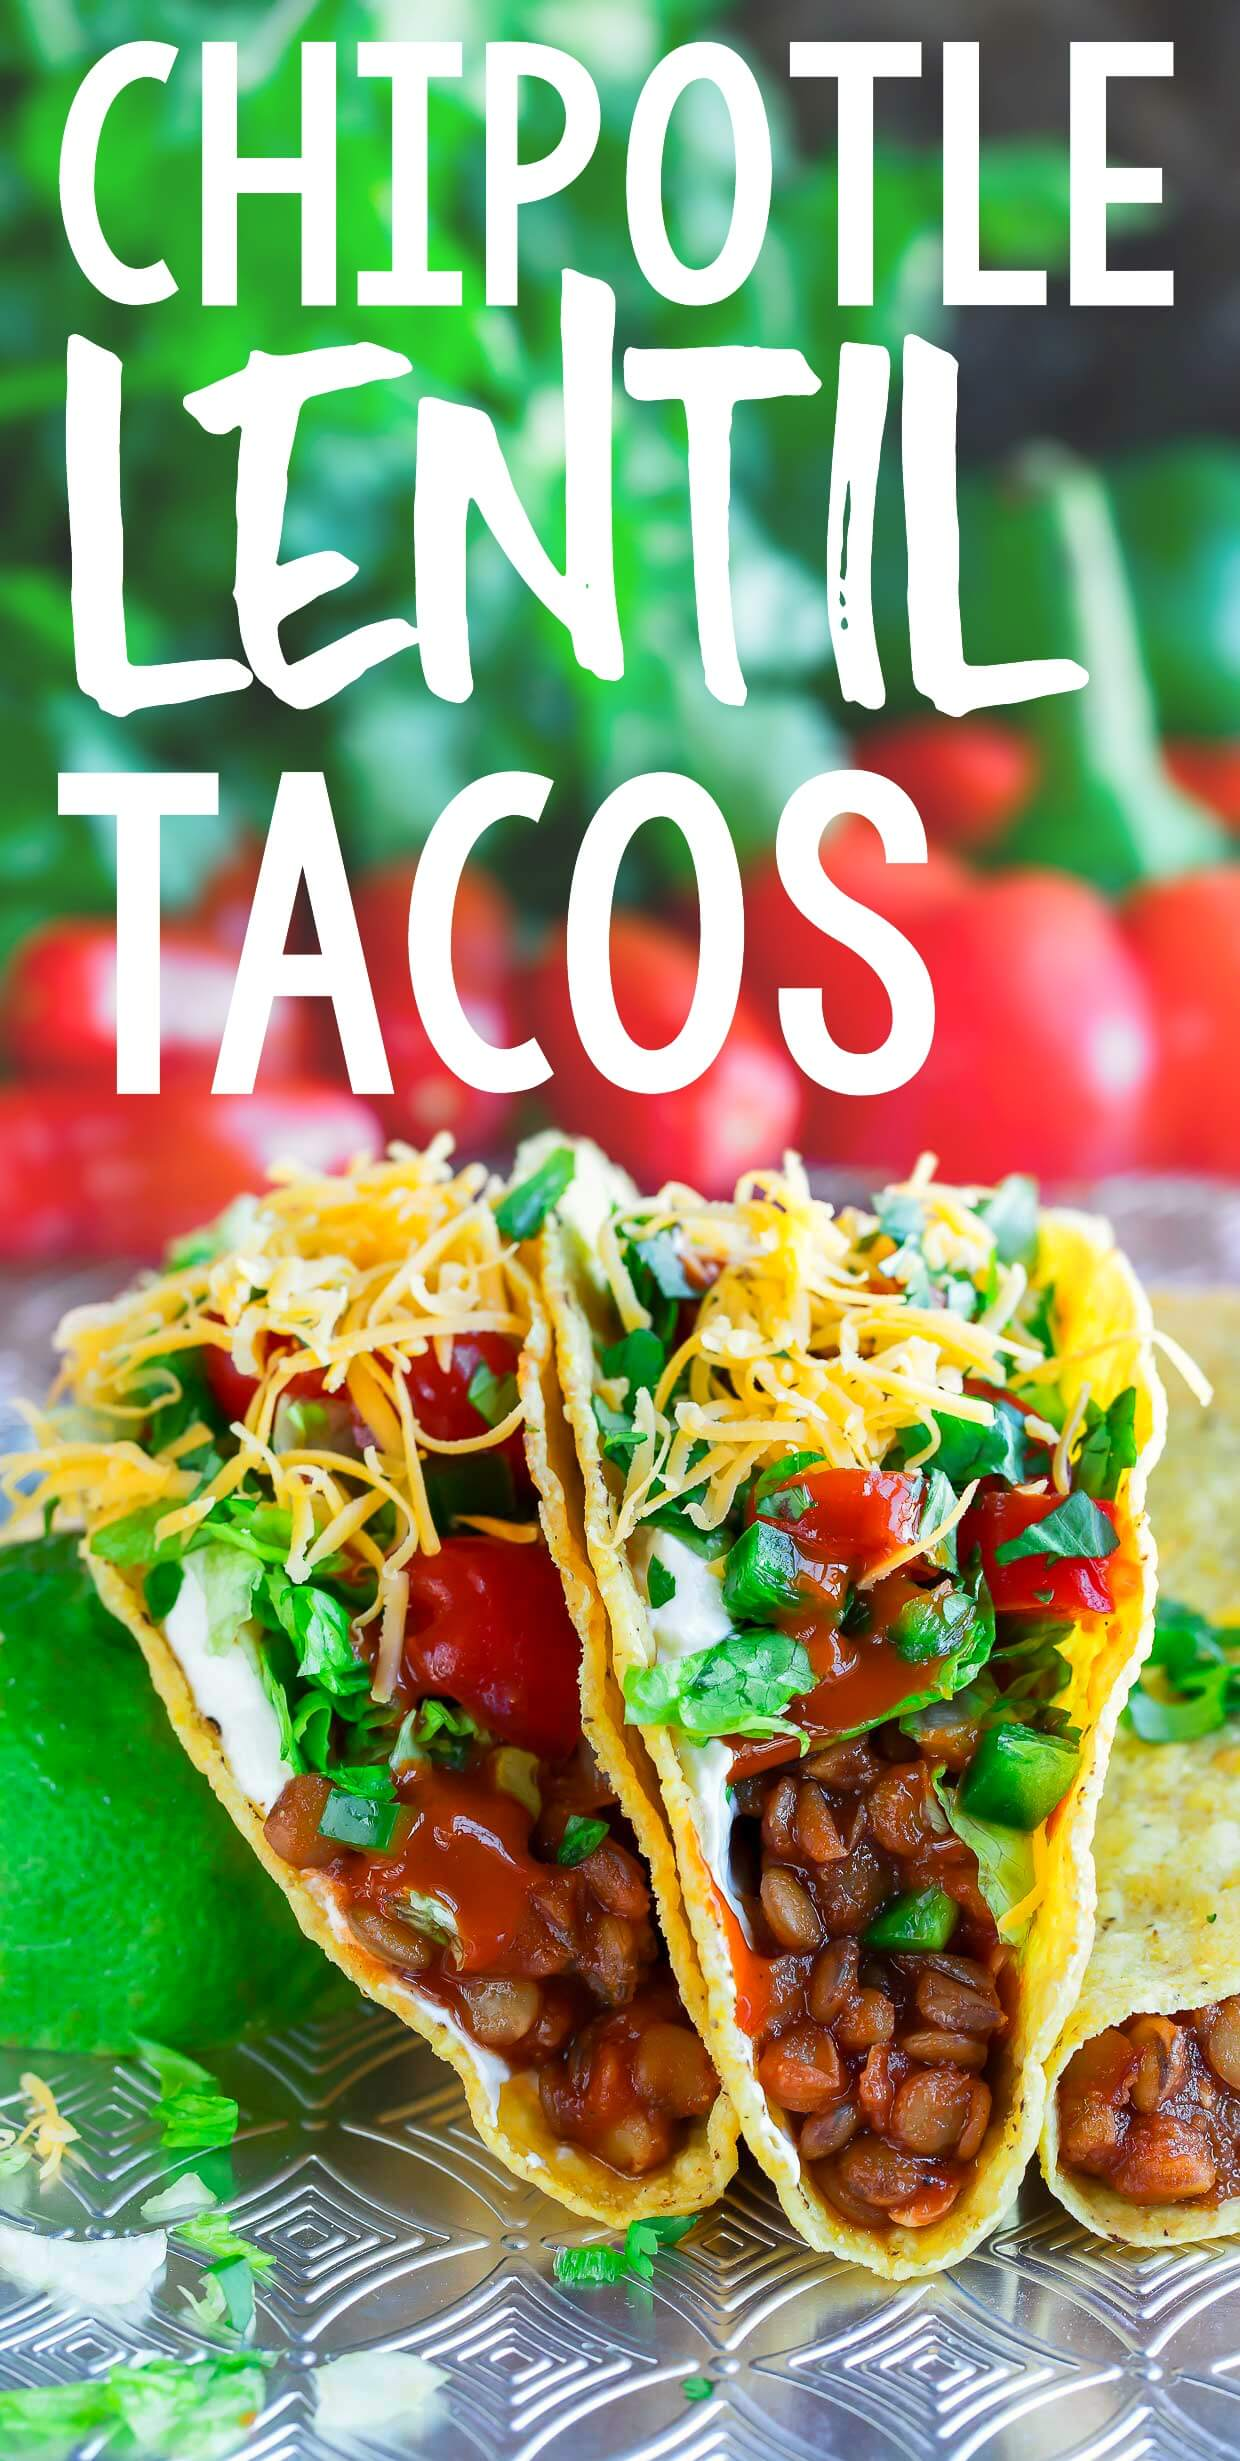 Chipotle Lentil Tacos turn this tasty vegetarian swap into an instant taco party! They're packed with protein, have literally half the fat of their meaty counterparts, and totally delicious too. Let's get our taco on!